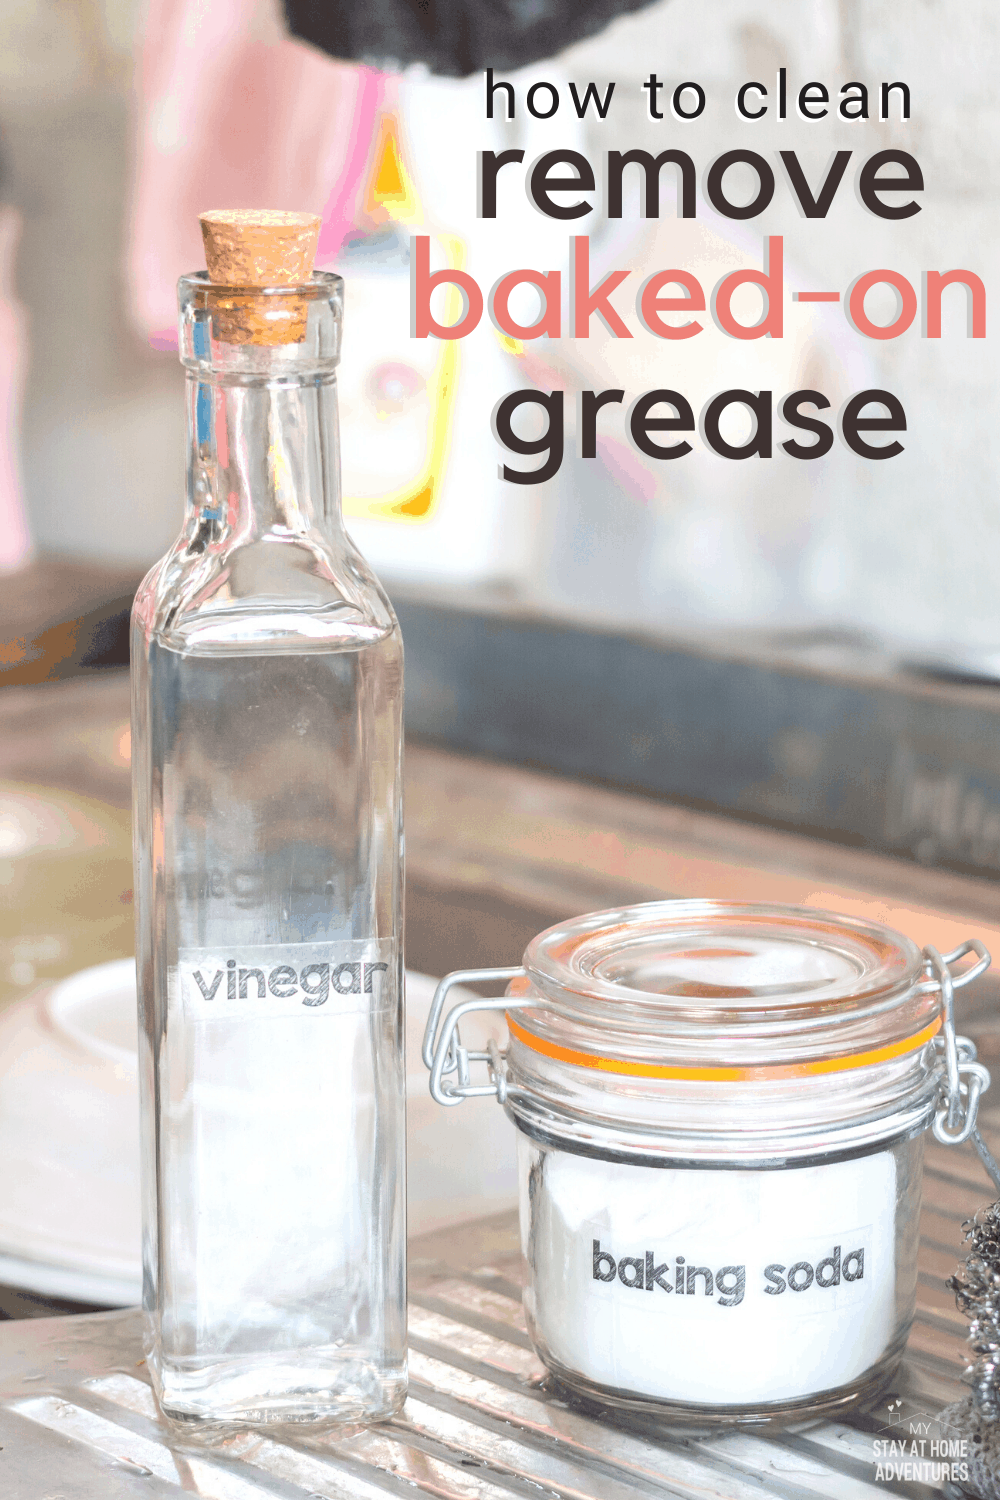 Learn two effective ways to clean baked-on grease from your stove that are fast and effective and will keep your stove looking clean. #cleanstove #cleaningtips #howto via @mystayathome